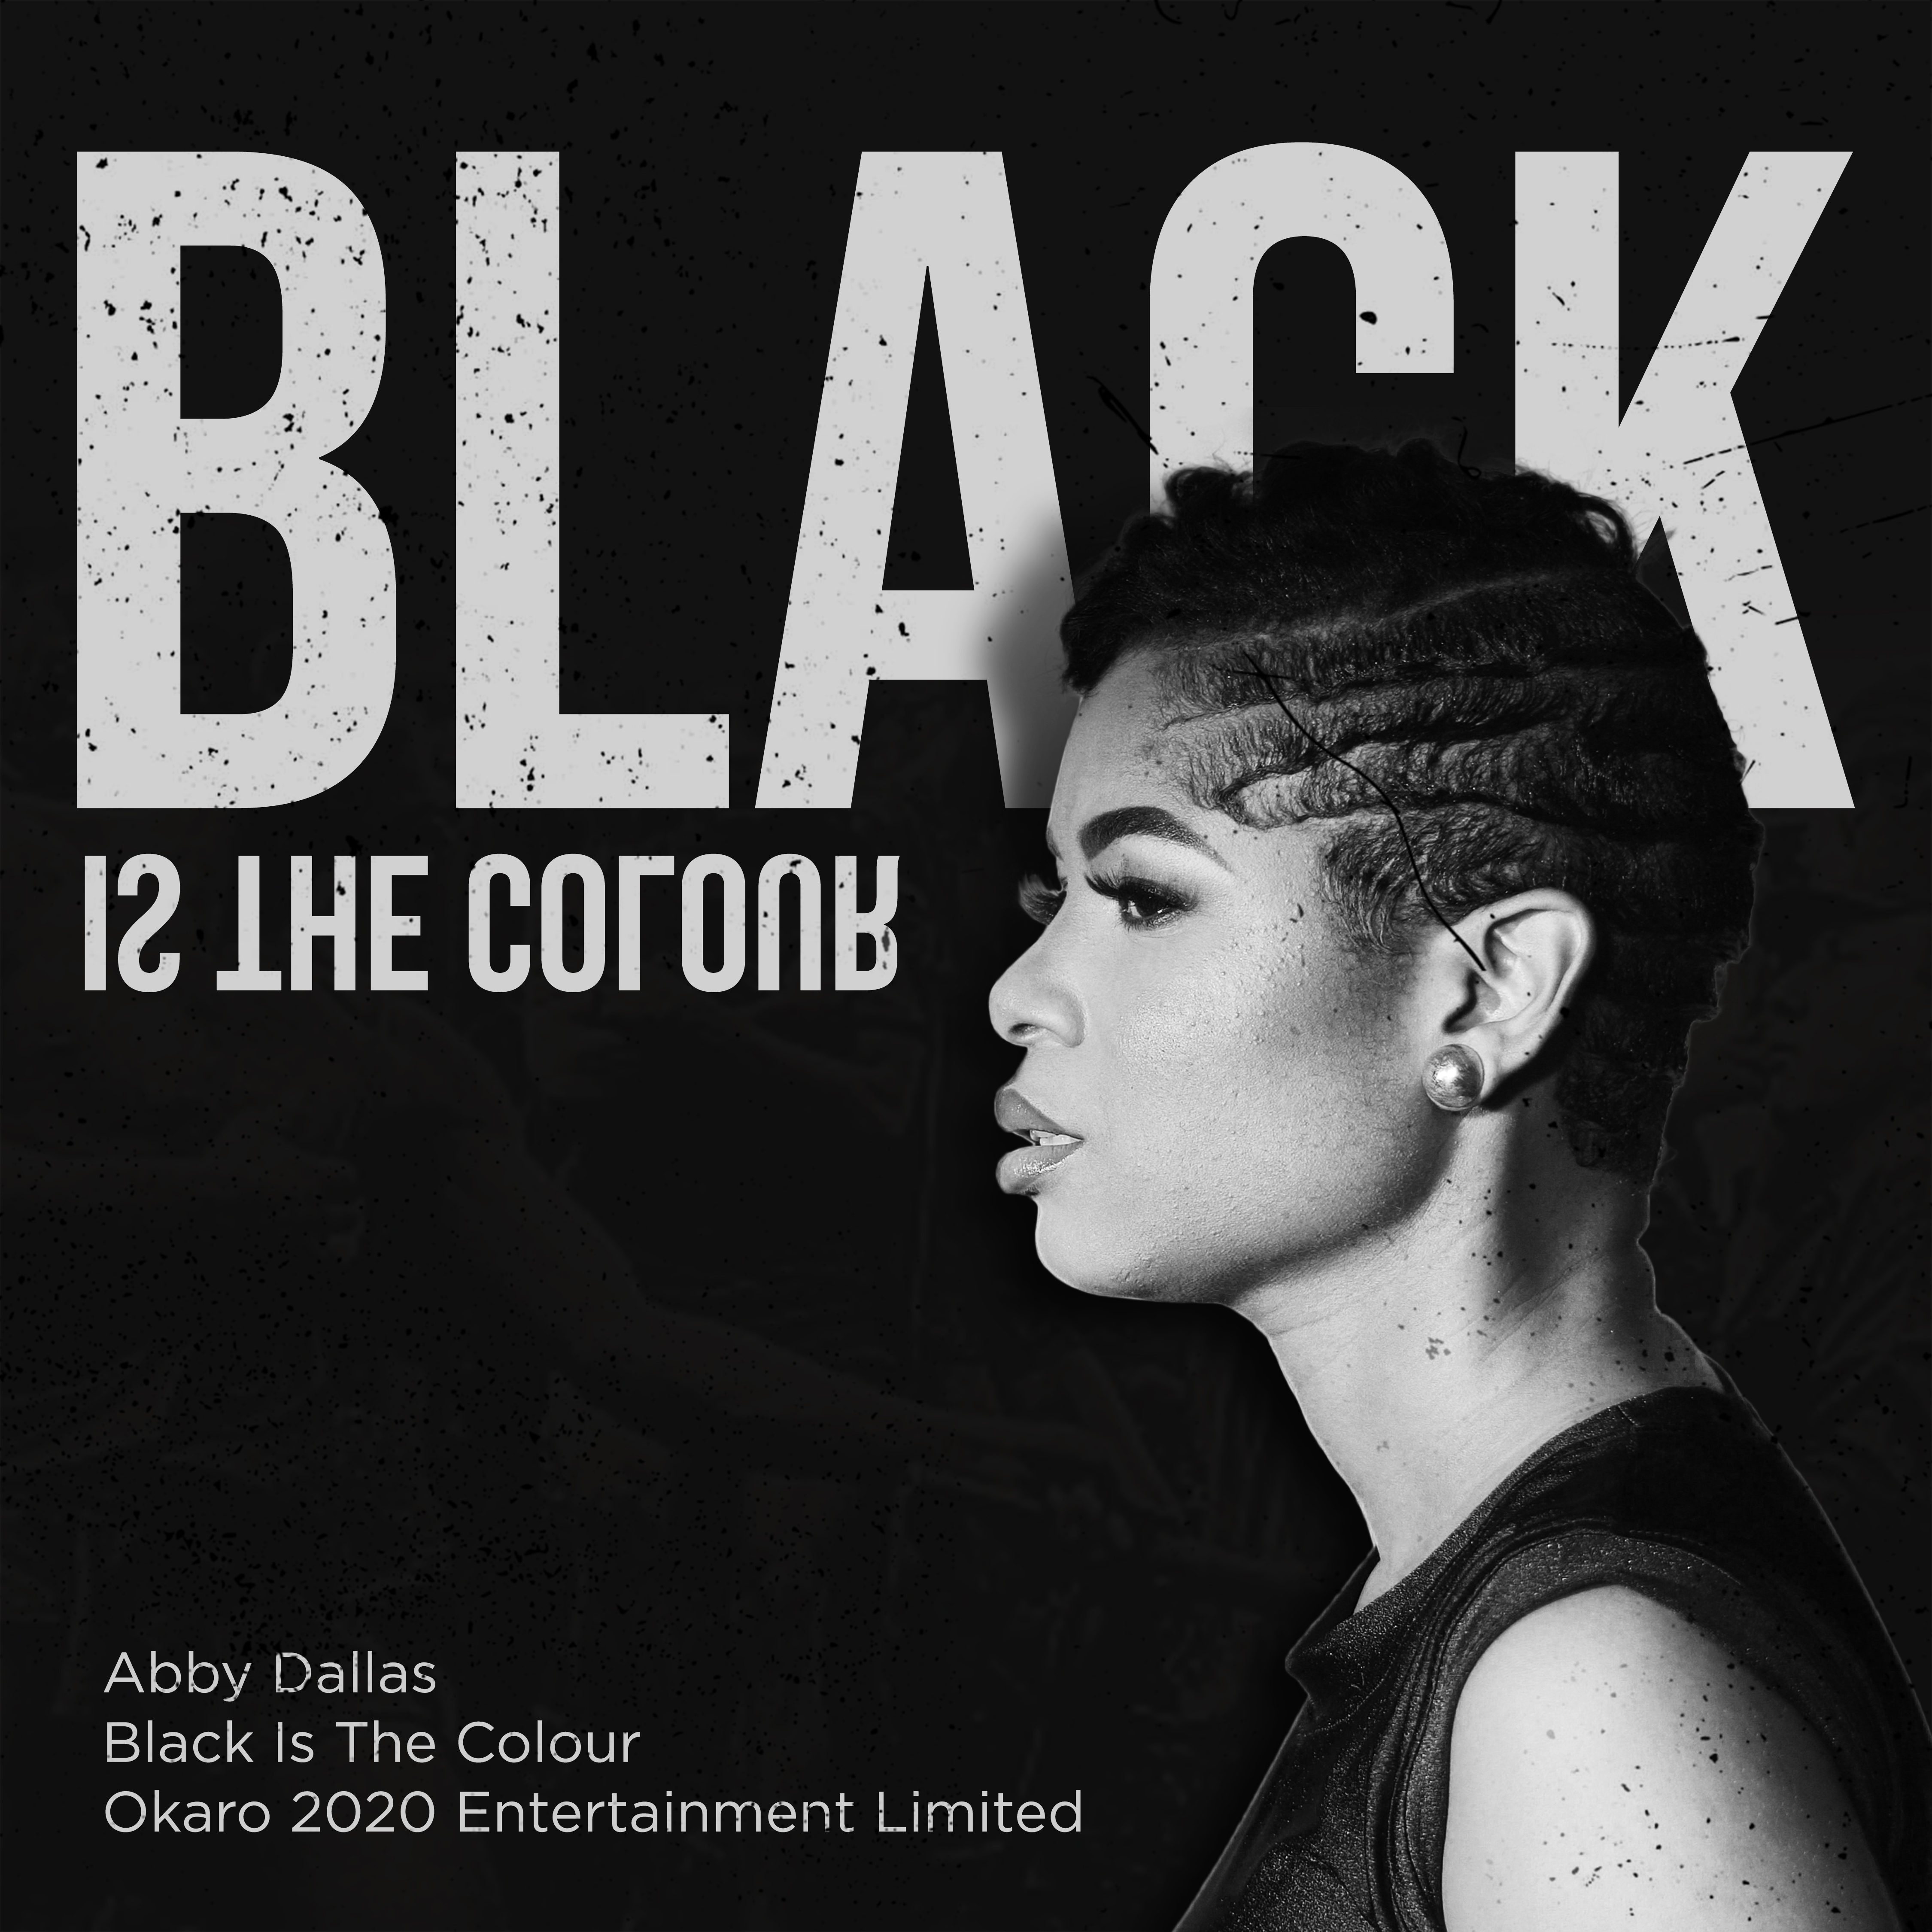 Reggae Artist Abby Dallas Drops New Song 'Black Is The Colour' With Powerful Visuals